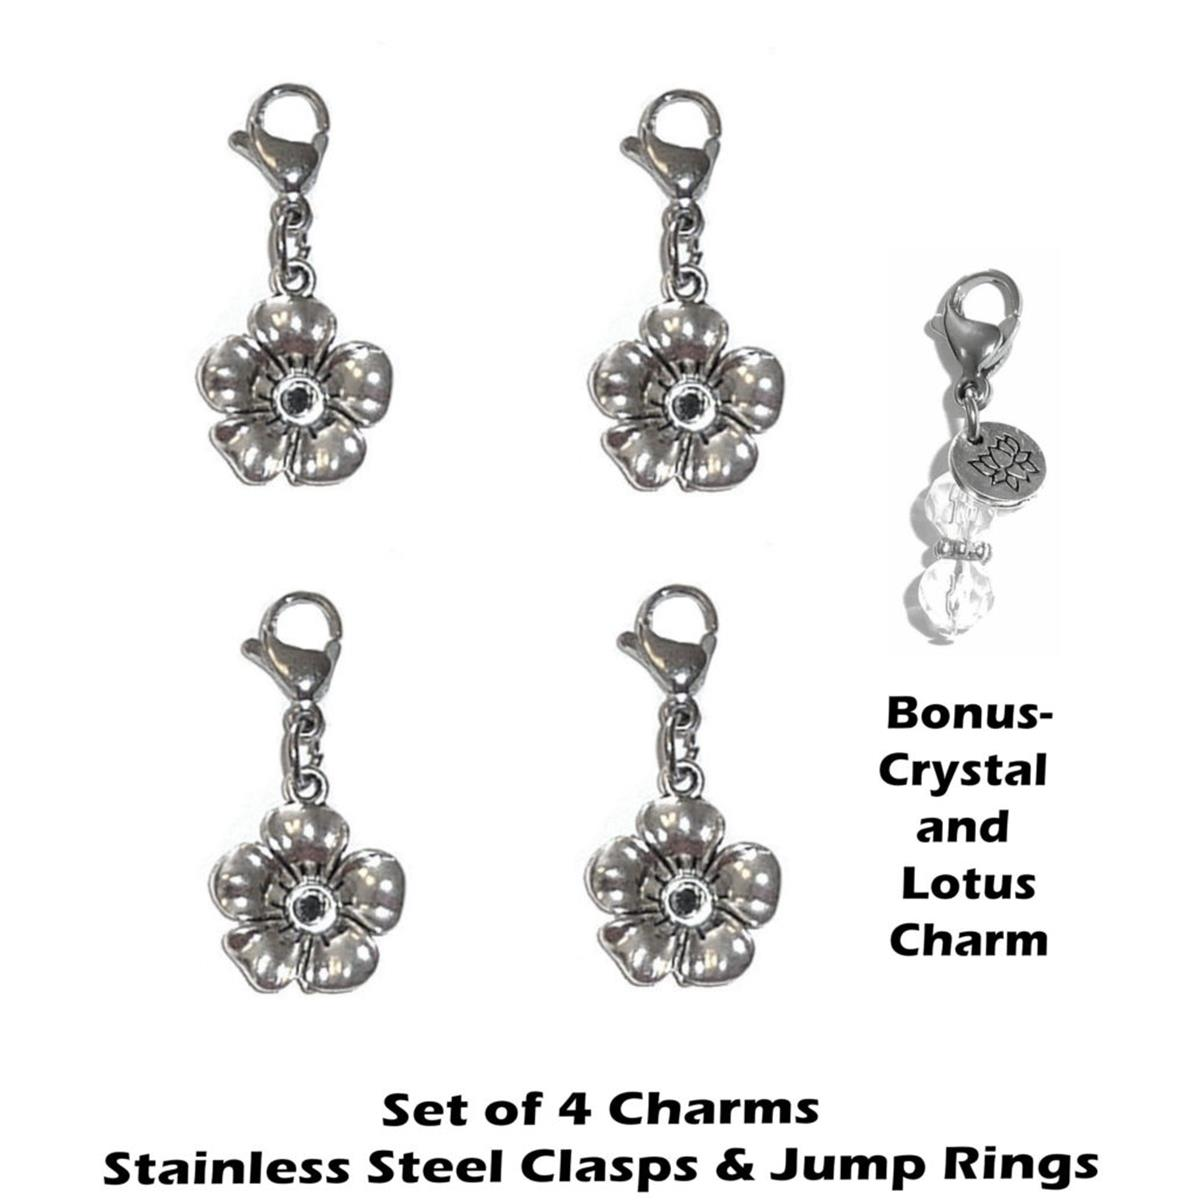 4 pack flower clip on charms - whimsical charms